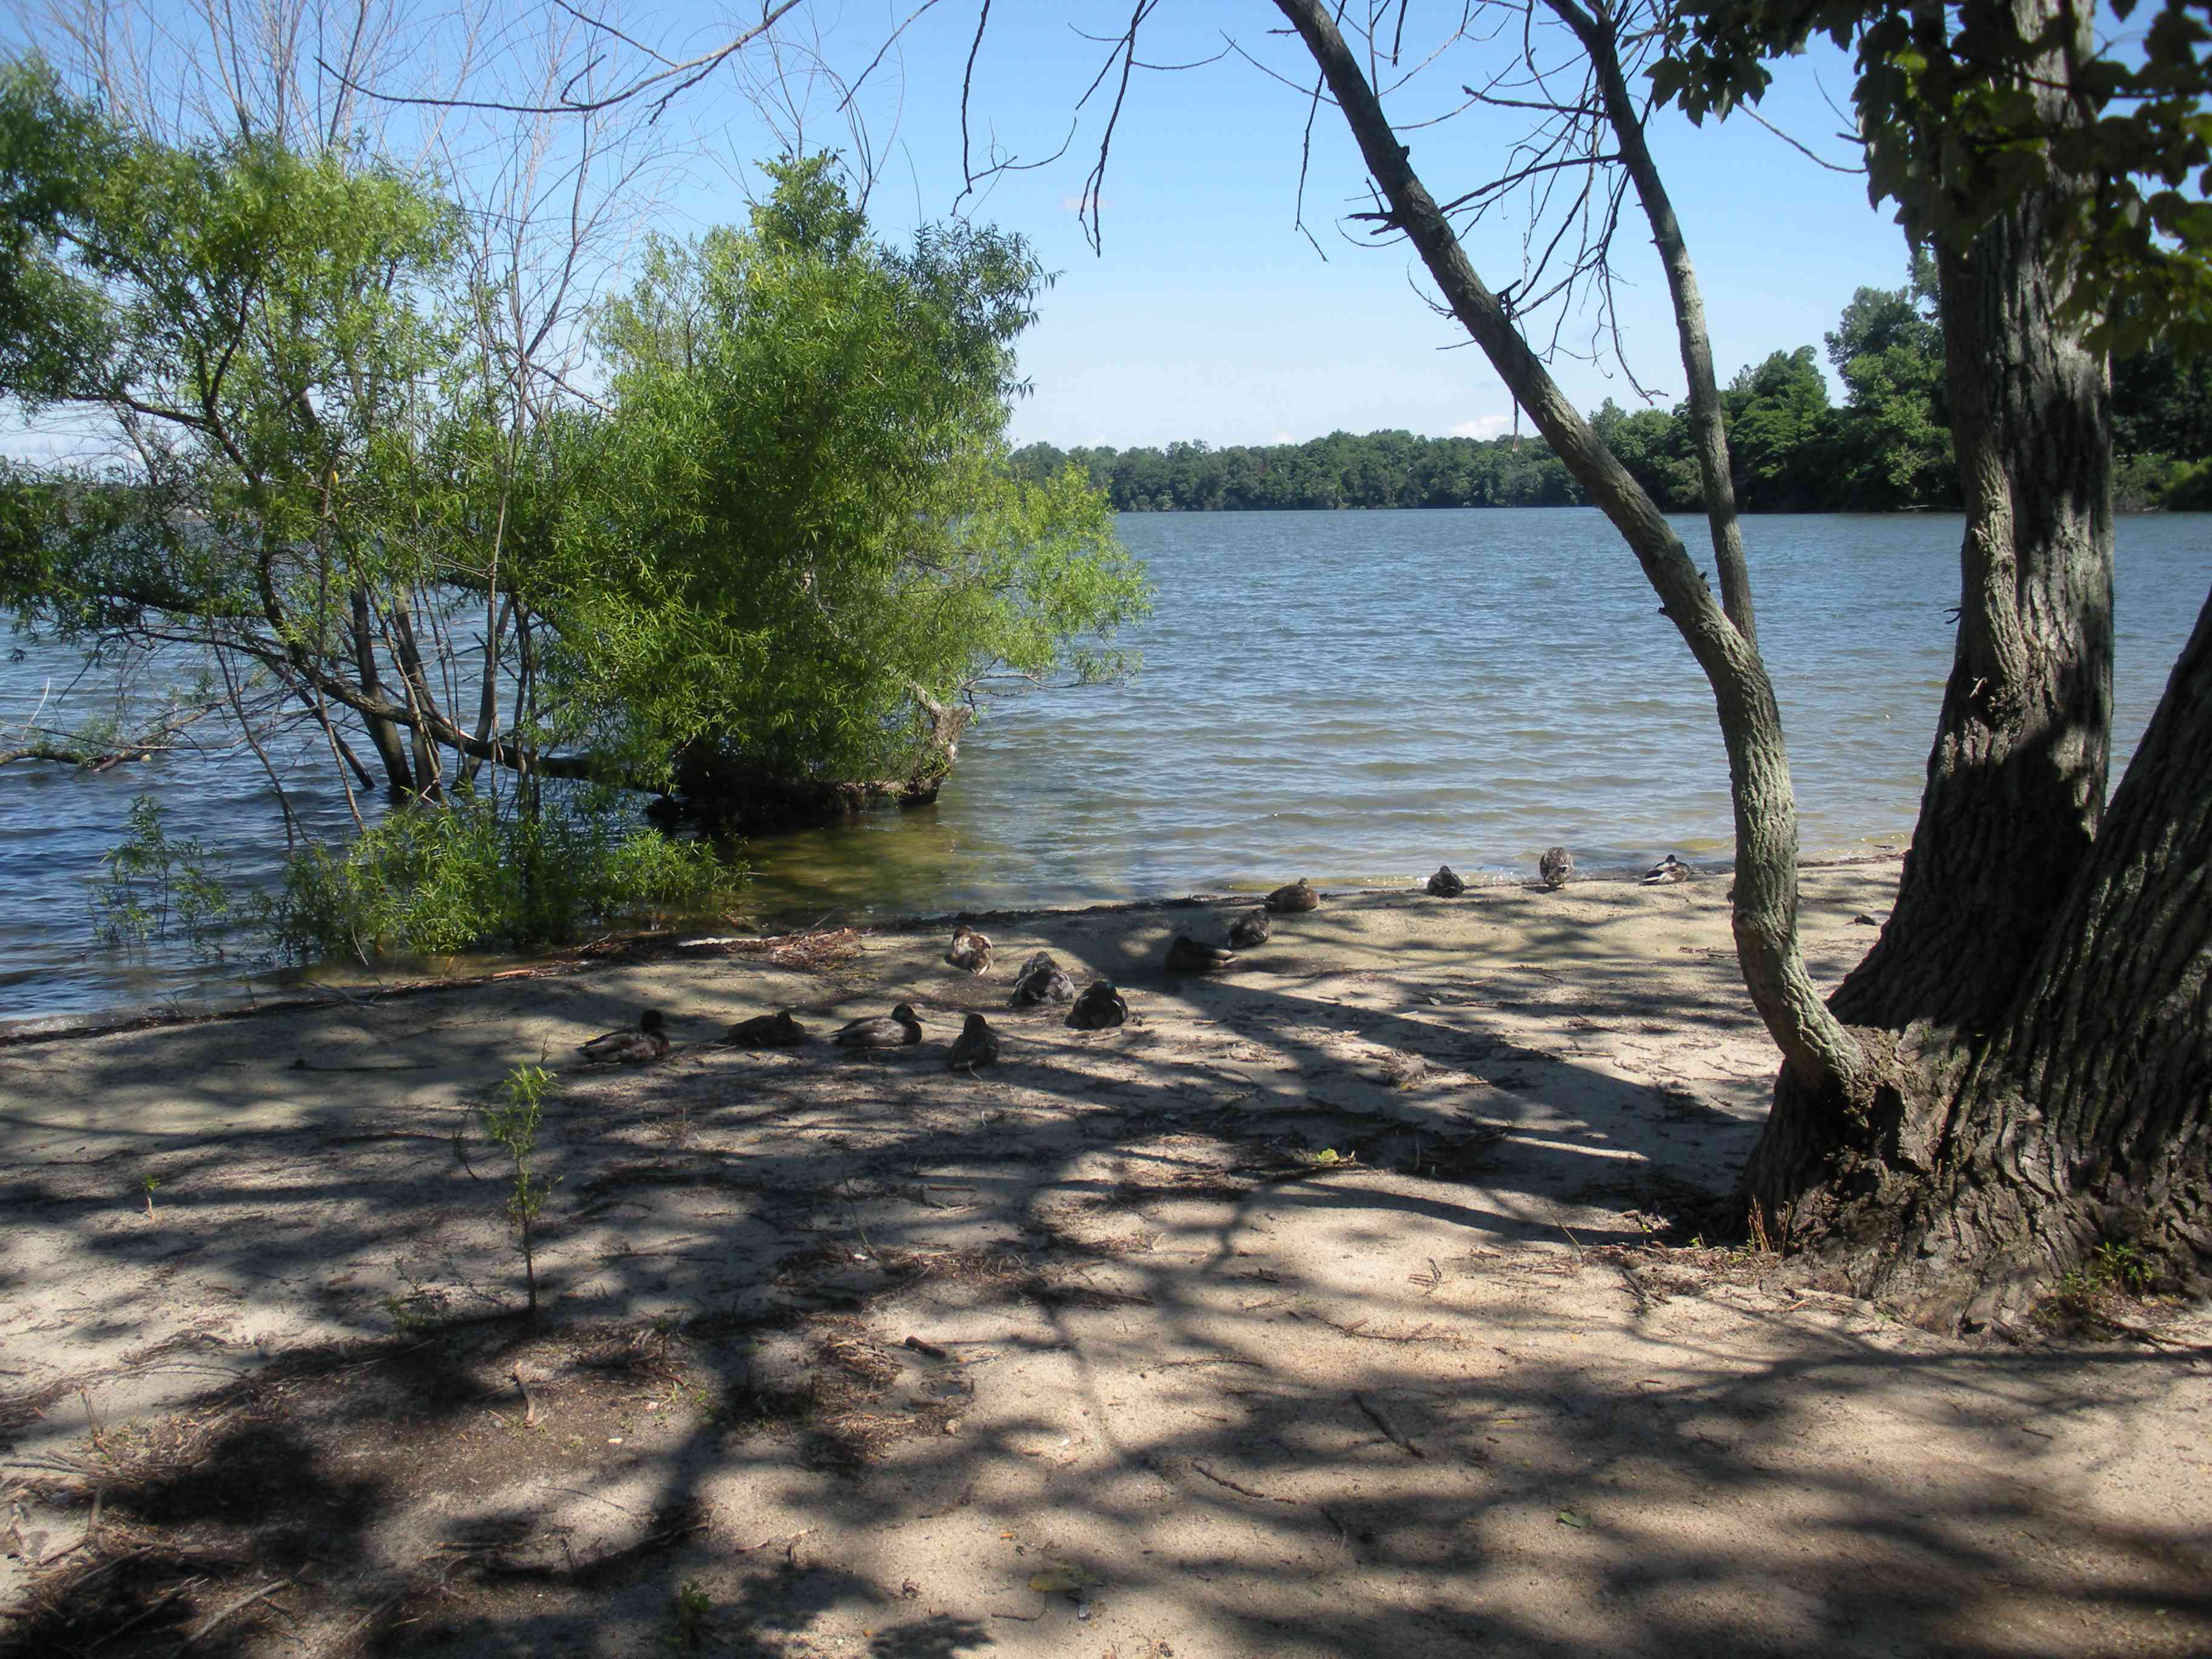 shore of Lake Ronkonkoma with trees in the foreground